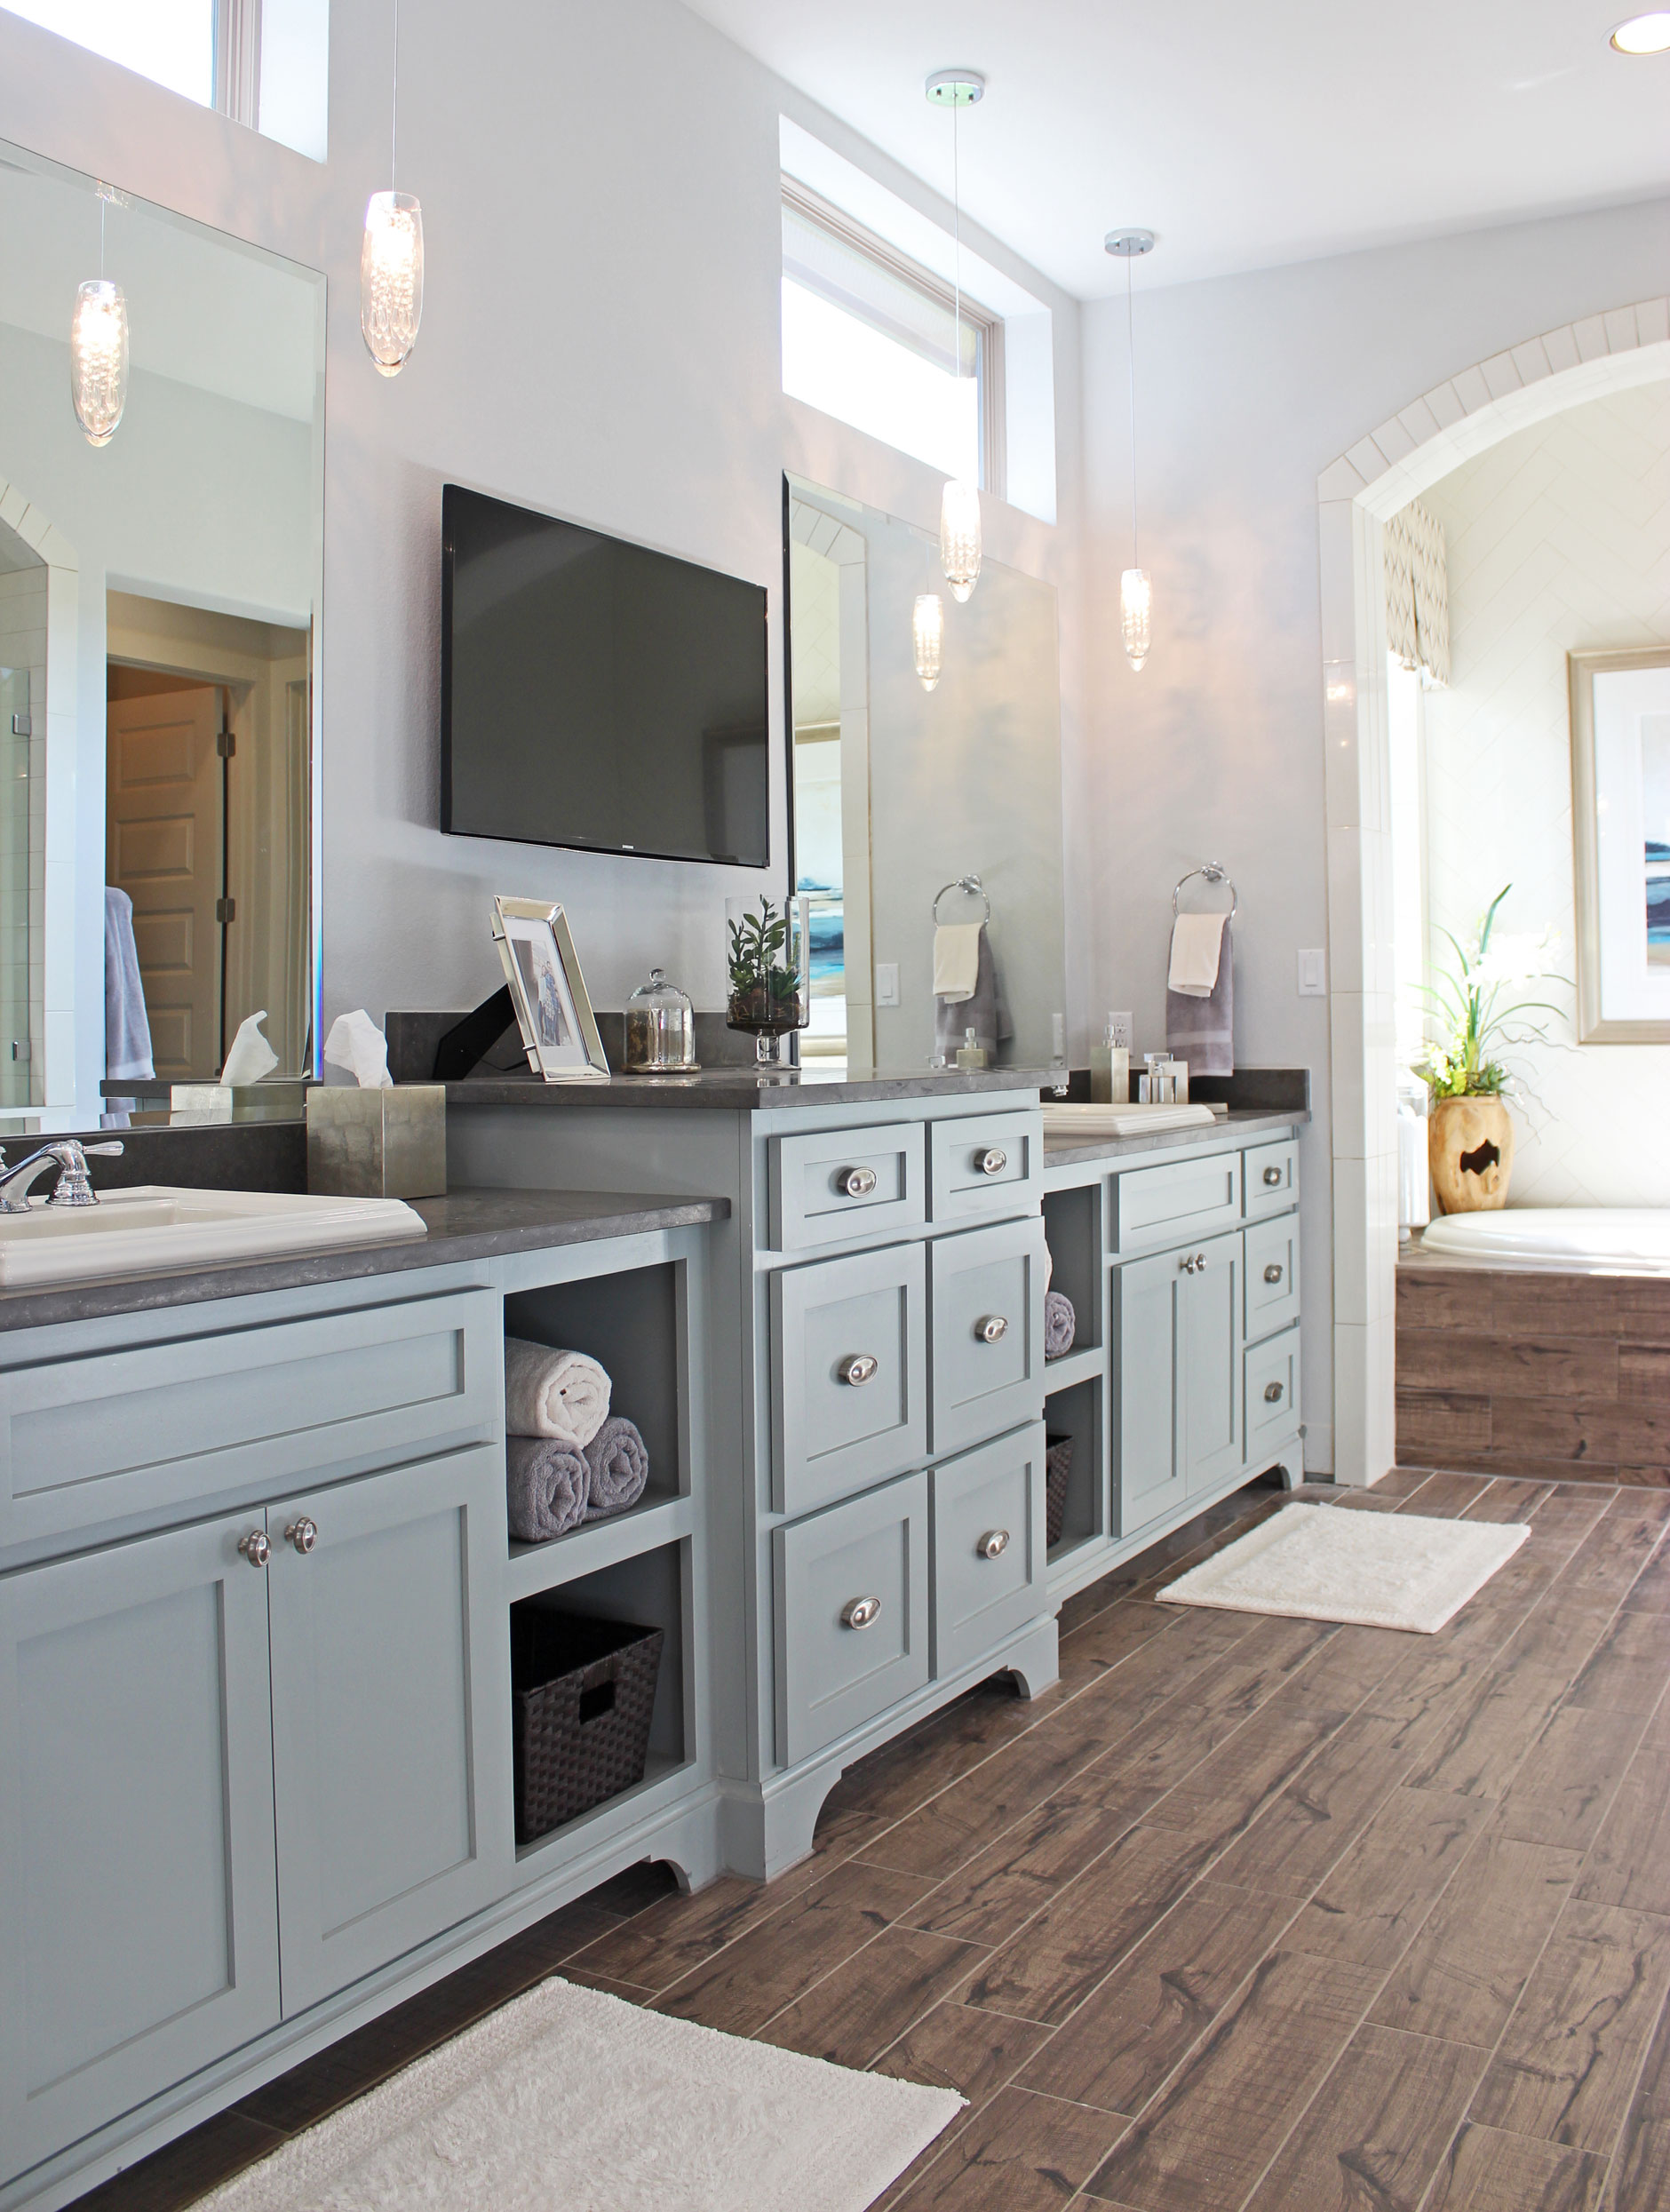 Cabinet Feet Add High-End Furniture Look - Burrows Cabinets ...